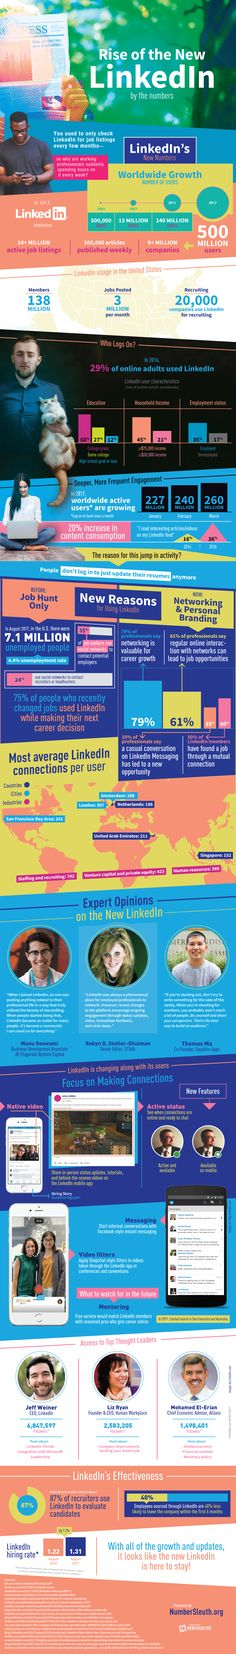 What if I told you that #linkedin , a social media platform that is now 14 years old, is the next big opportunity for marketers and brands? #linkedinmarketing